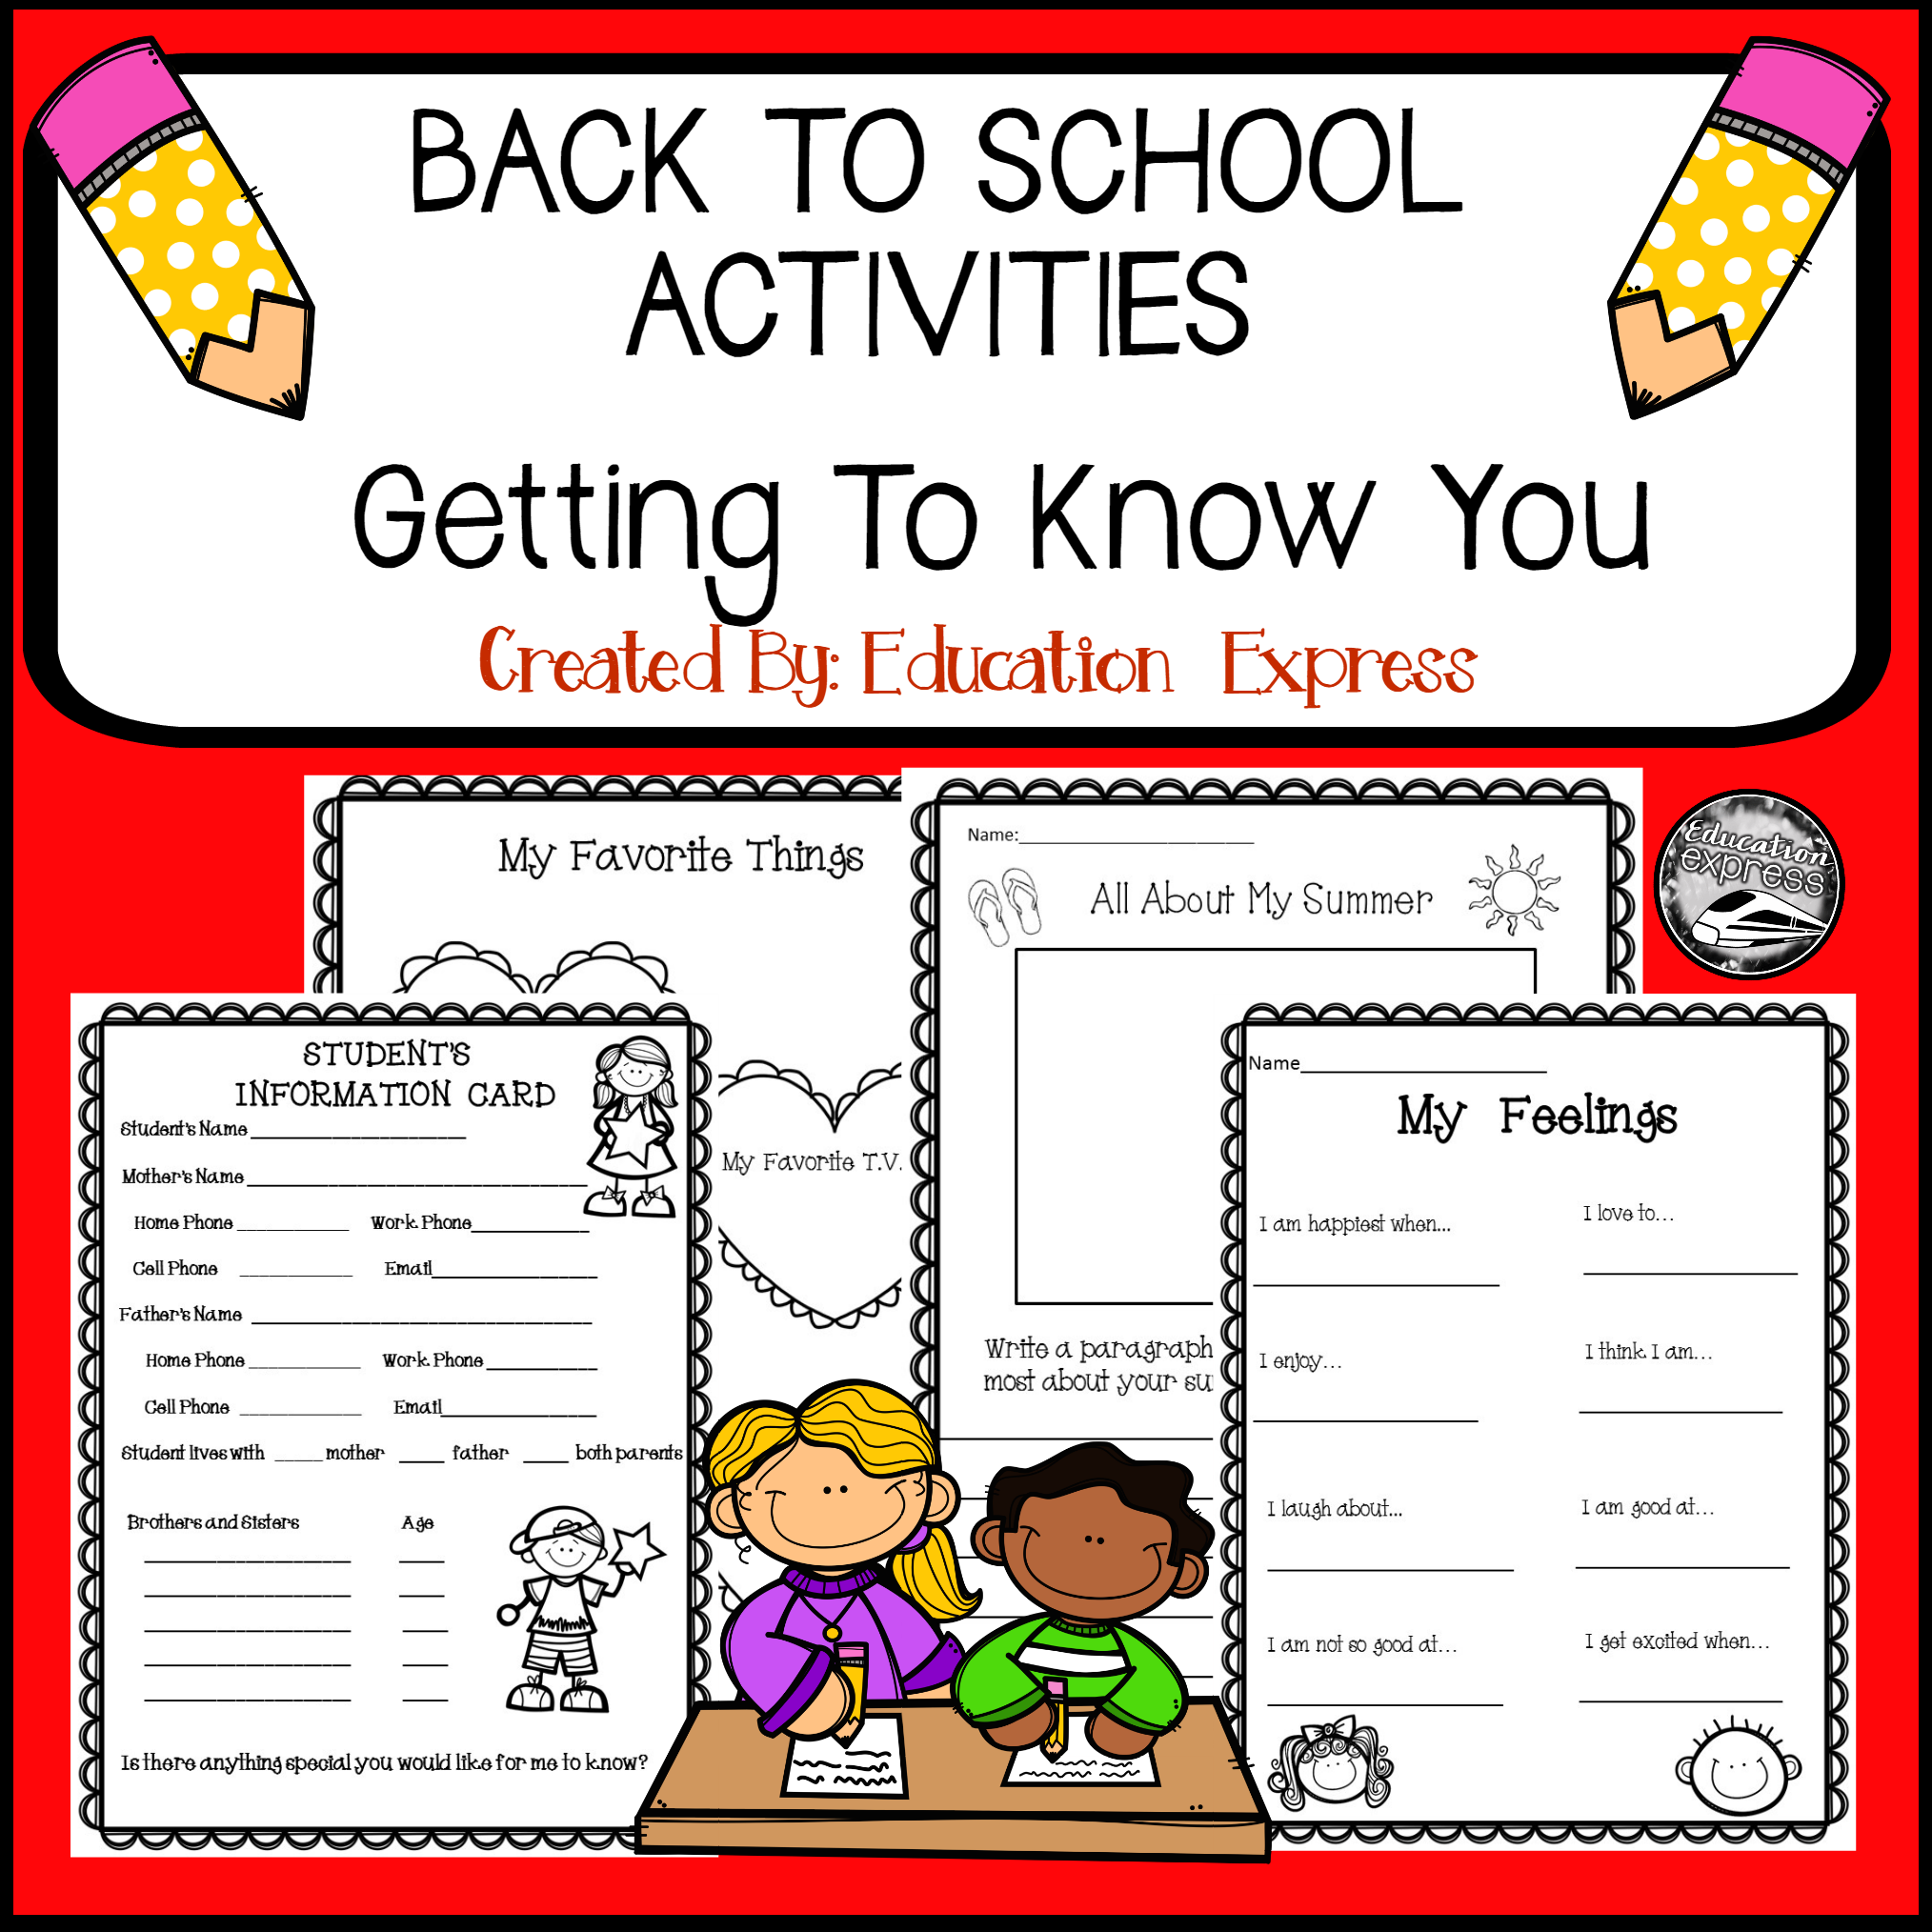 Getting To Know You Back To School Activites